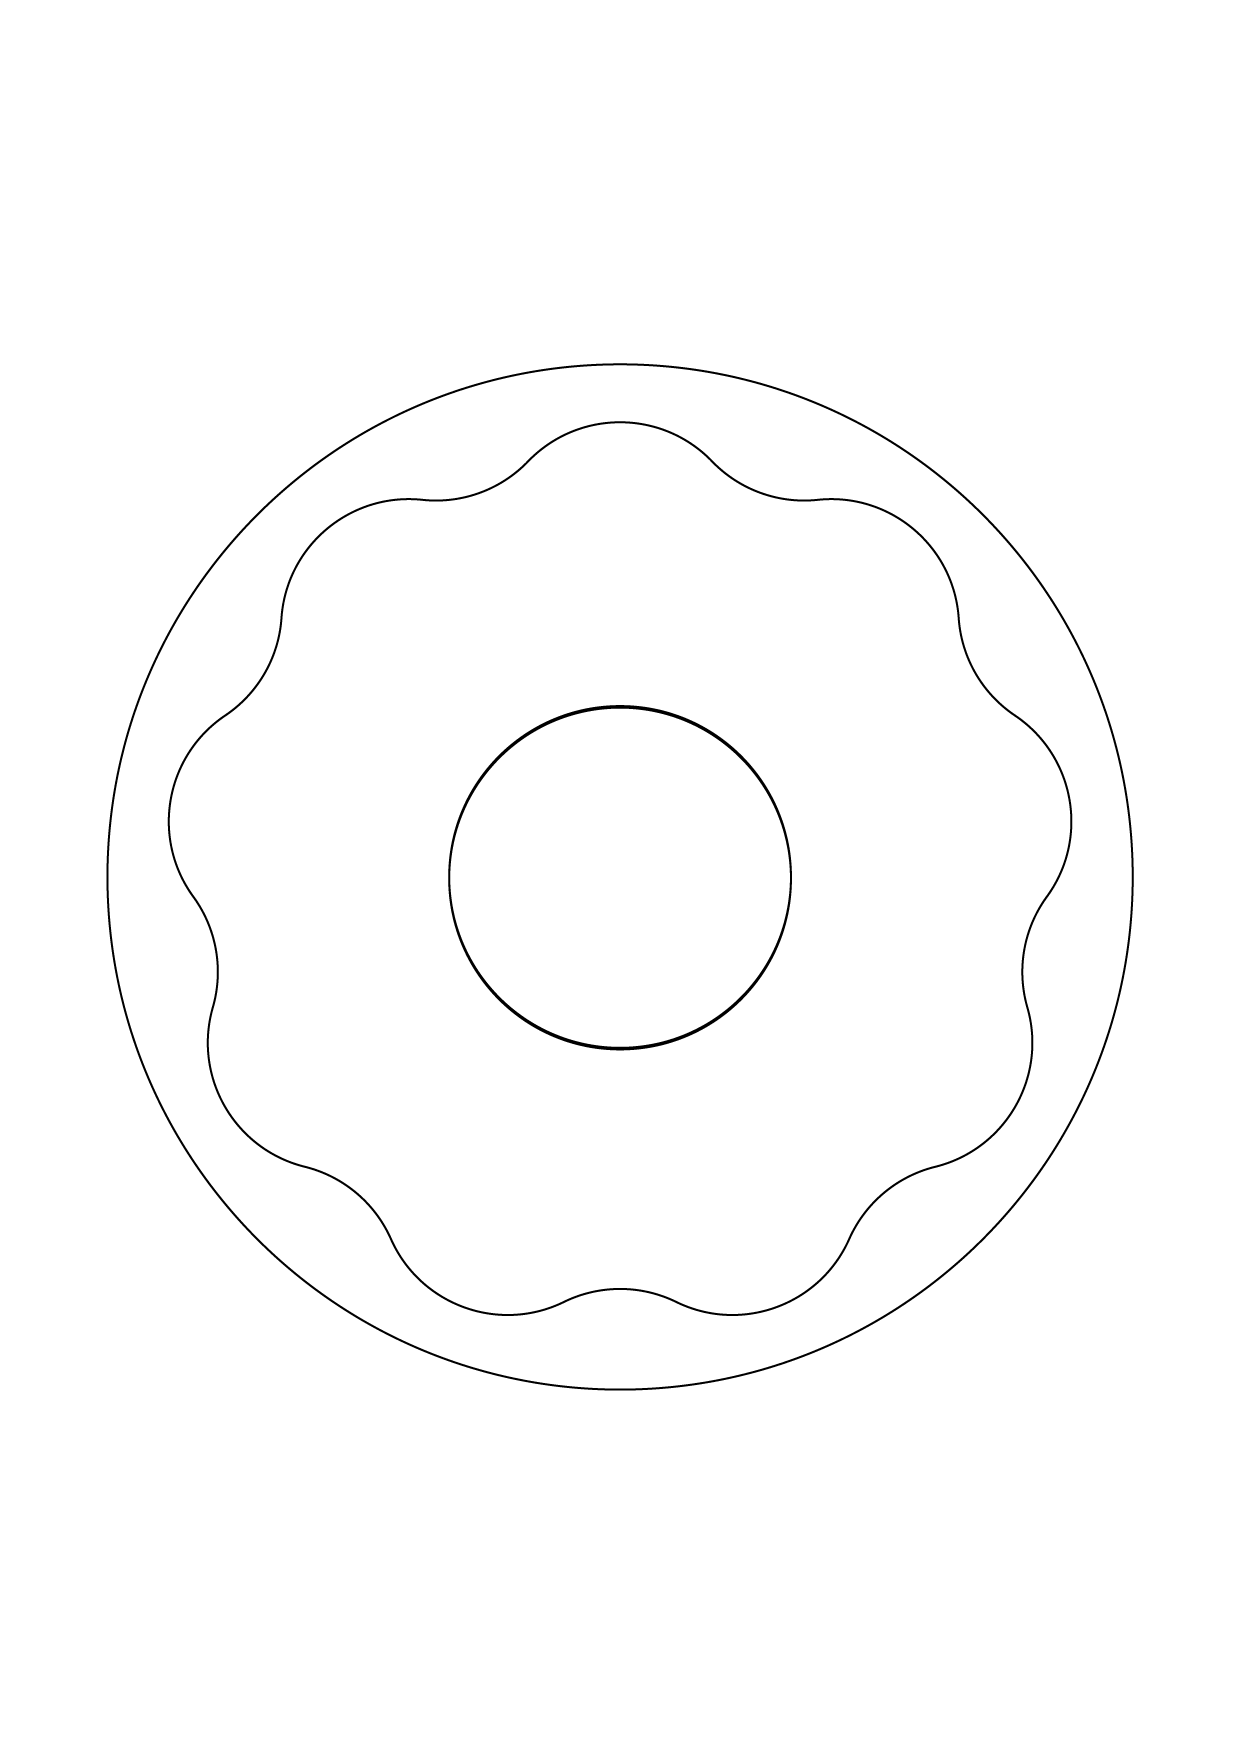 Donut Template